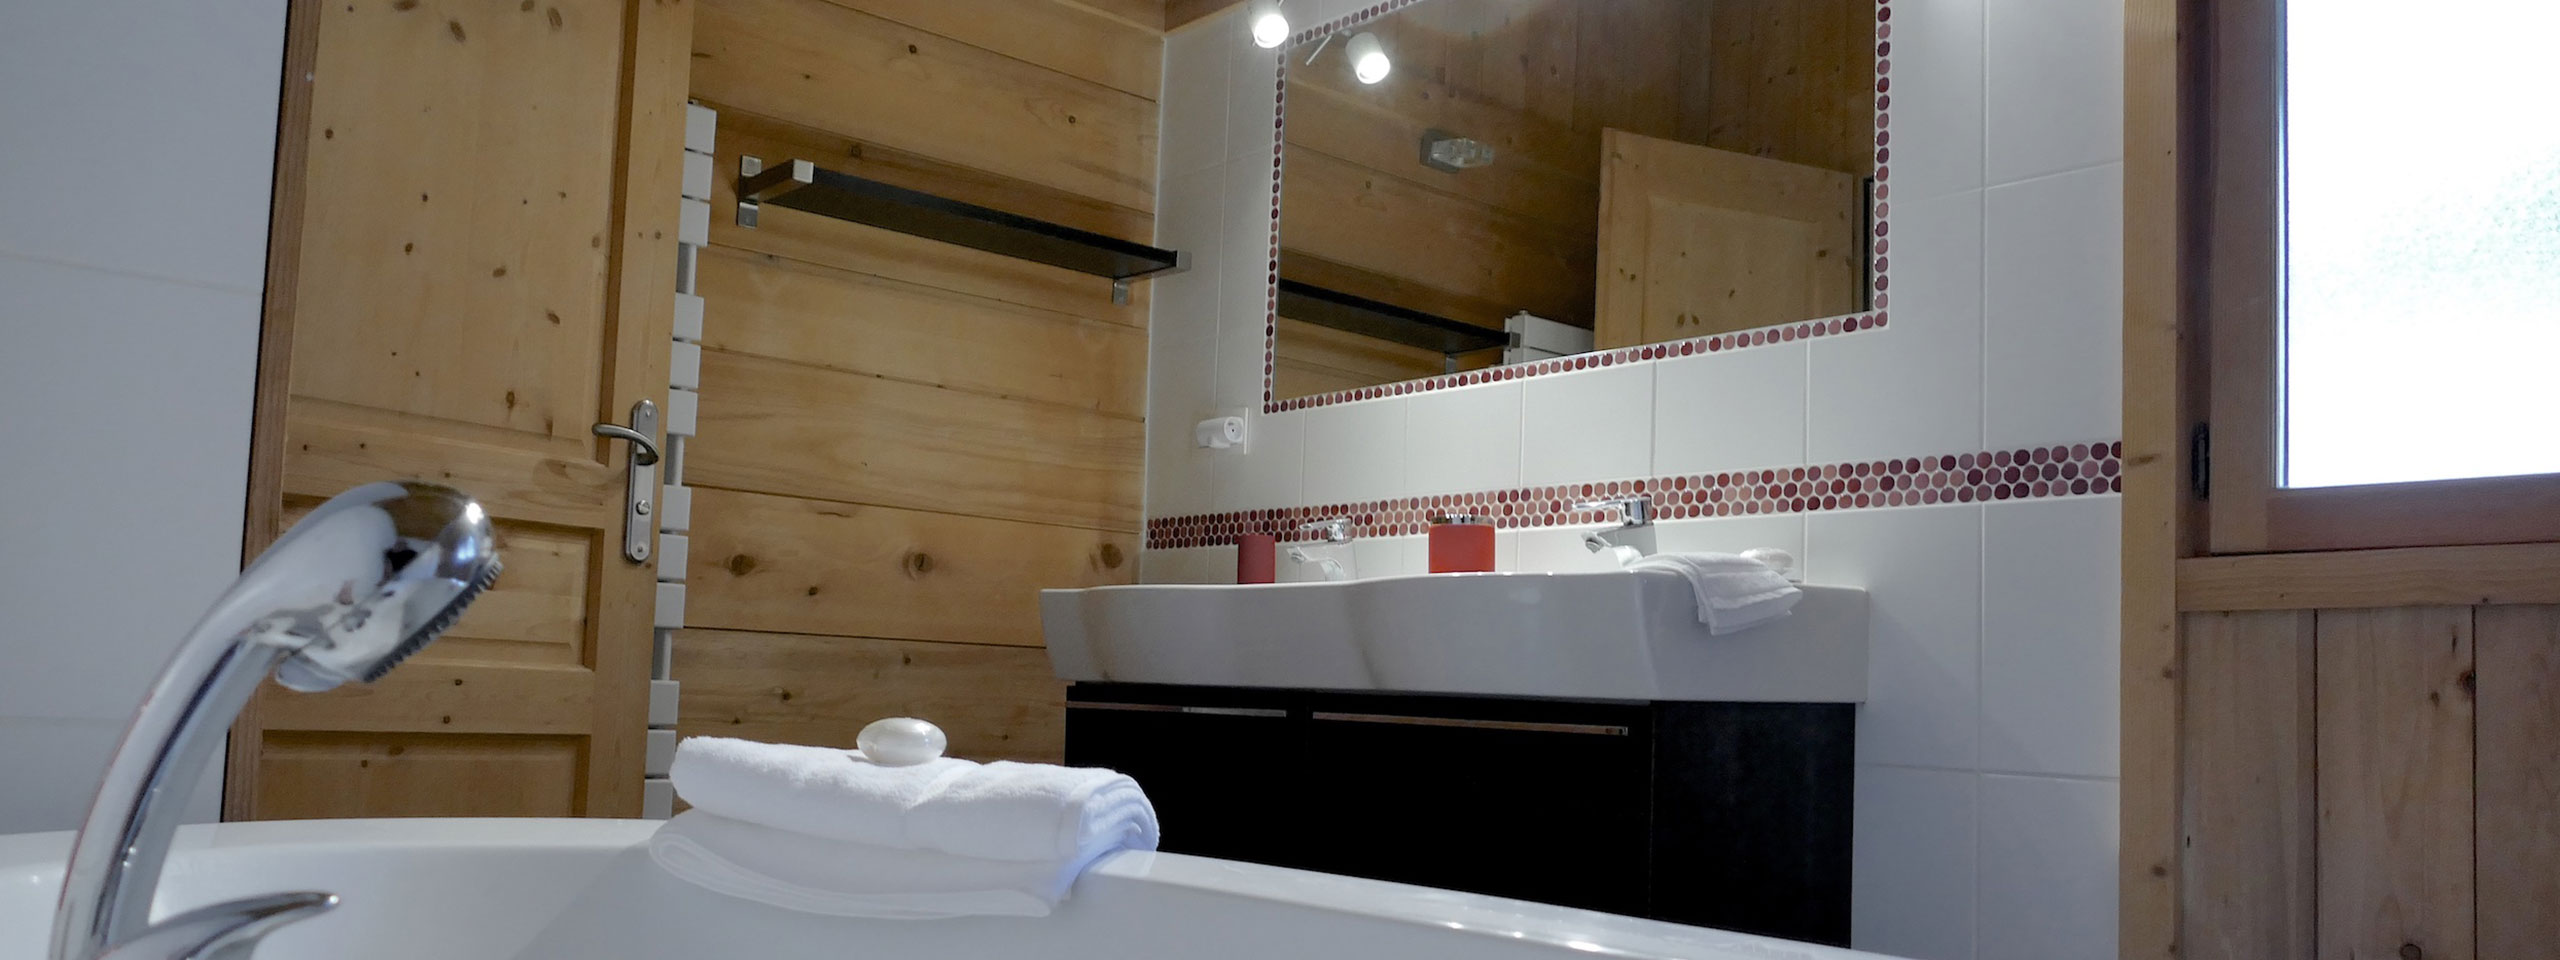 Location Chalet Les 3 Cimes Blanches Chamonix The Chalet During Summer